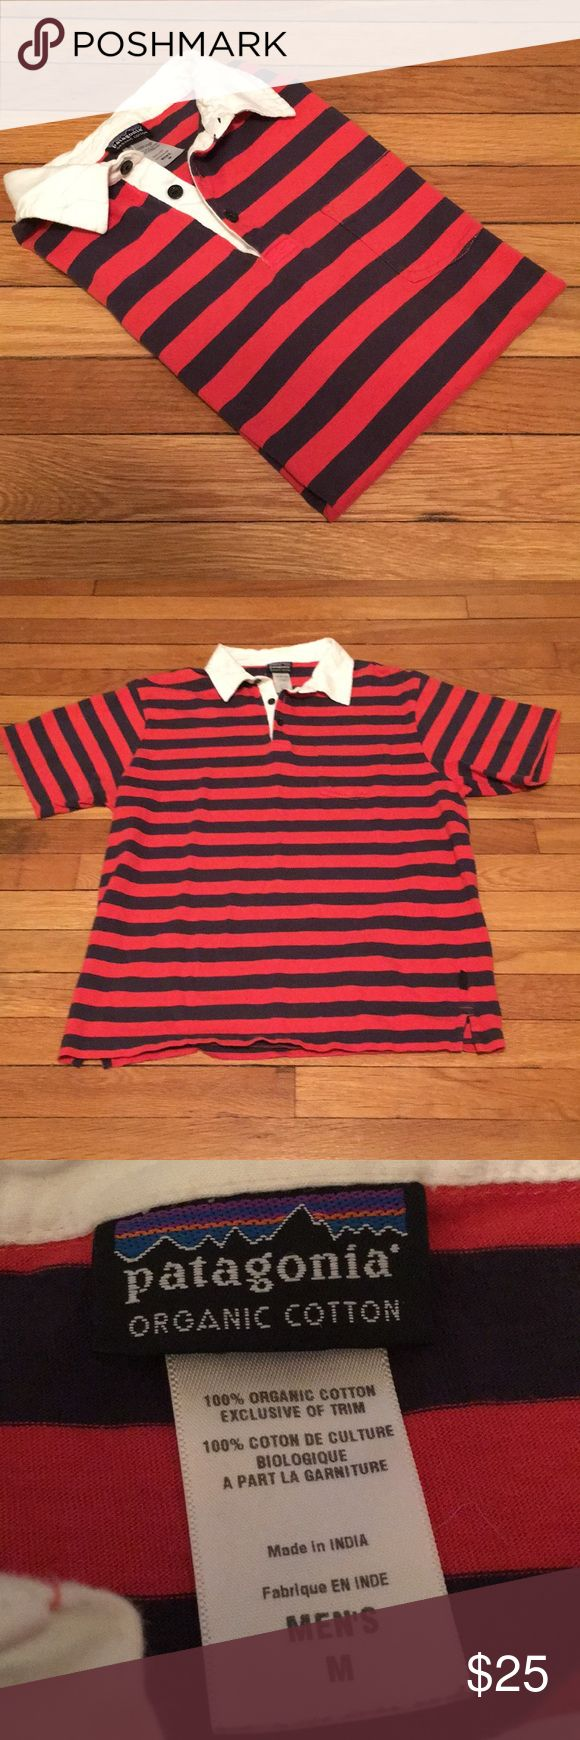 MEN'S PATAGONIA STRIPED POLO SHIRT Size: Medium, orange and navy-colored Patagonia Organic Cotton polo shirt with white collar, shirt pocket, and Patagonia tag on left side of shirt.  In great condition!!  Serious inquiries no lowballing.  Tags: patagonia, synchilla, organic cotton, nike, columbia, the north face, gortex, supreme Patagonia Shirts Polos